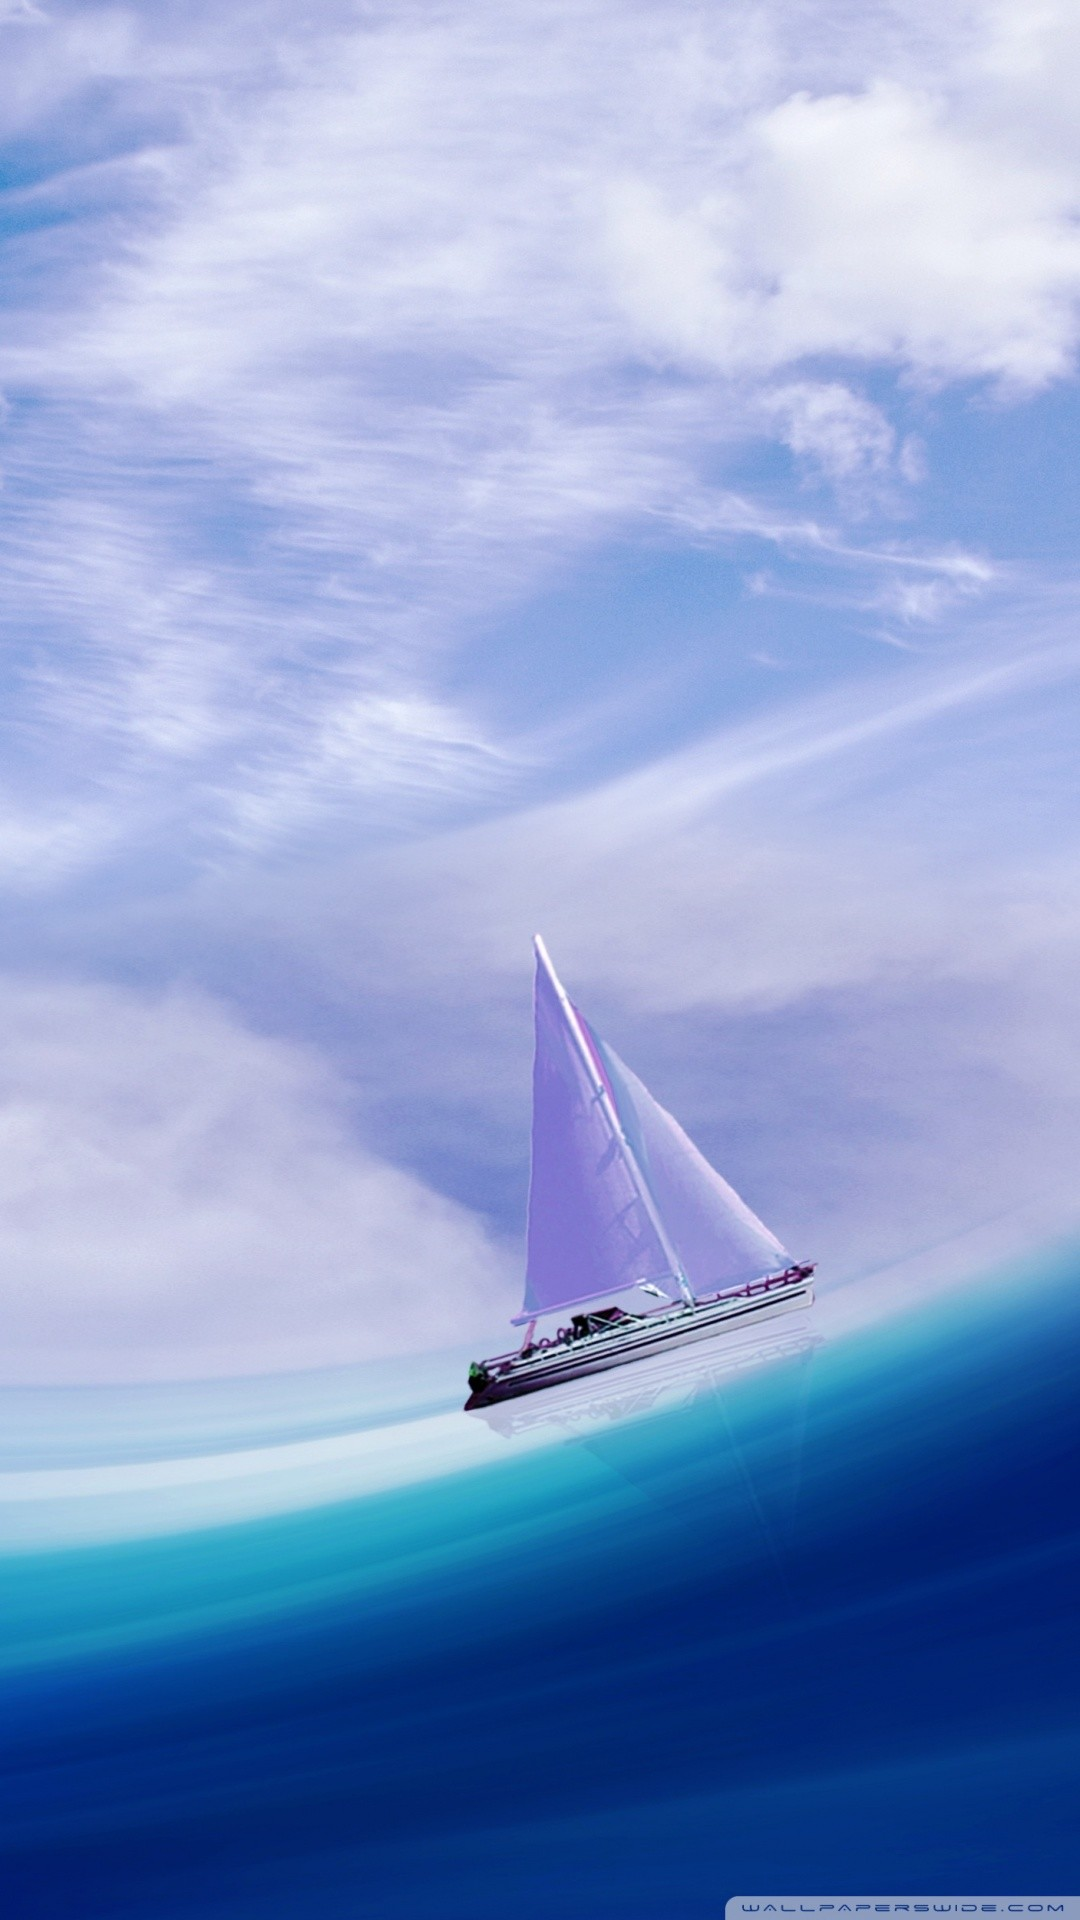 Free Sailboat, Holiday, Summer phone wallpaper by 19meridith69